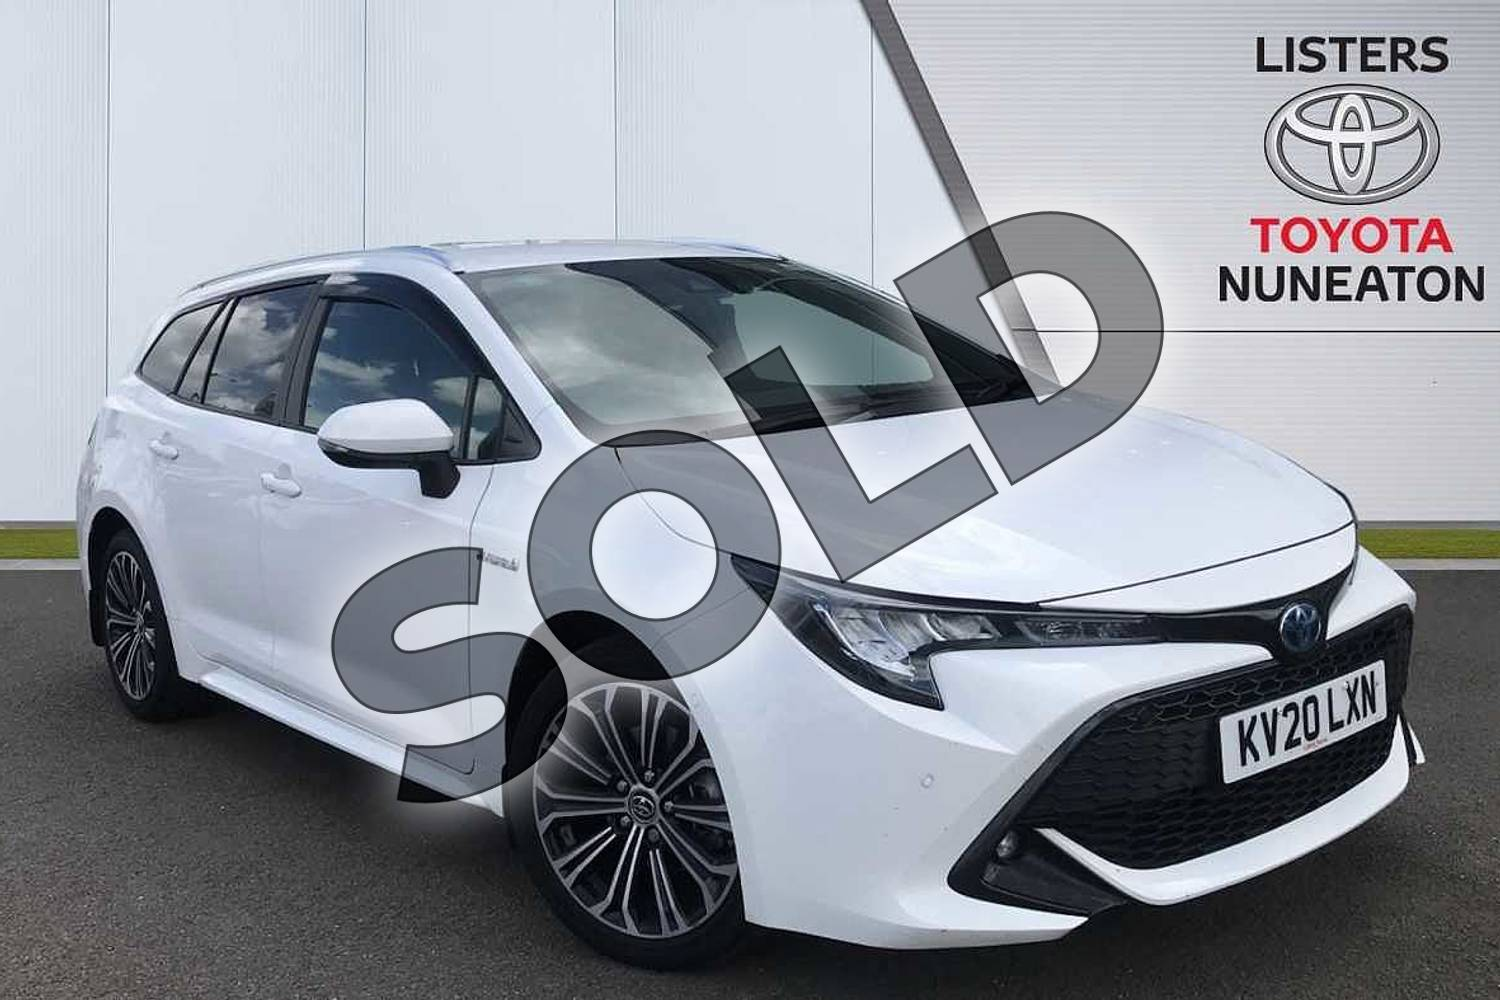 2020 Toyota Corolla Touring Sport 1.8 VVT-i Hybrid Design 5dr CVT in White at Listers Toyota Nuneaton